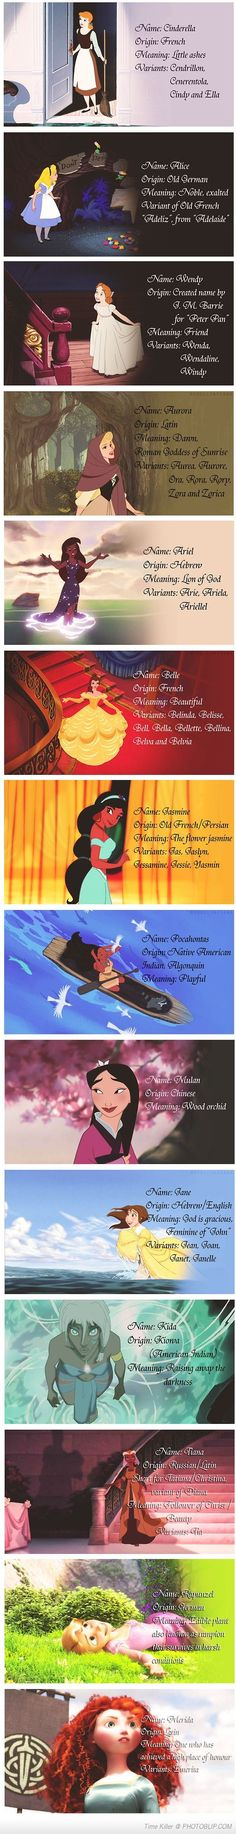 The Meanings Behind The Names Of The Disney Ladies. love this!